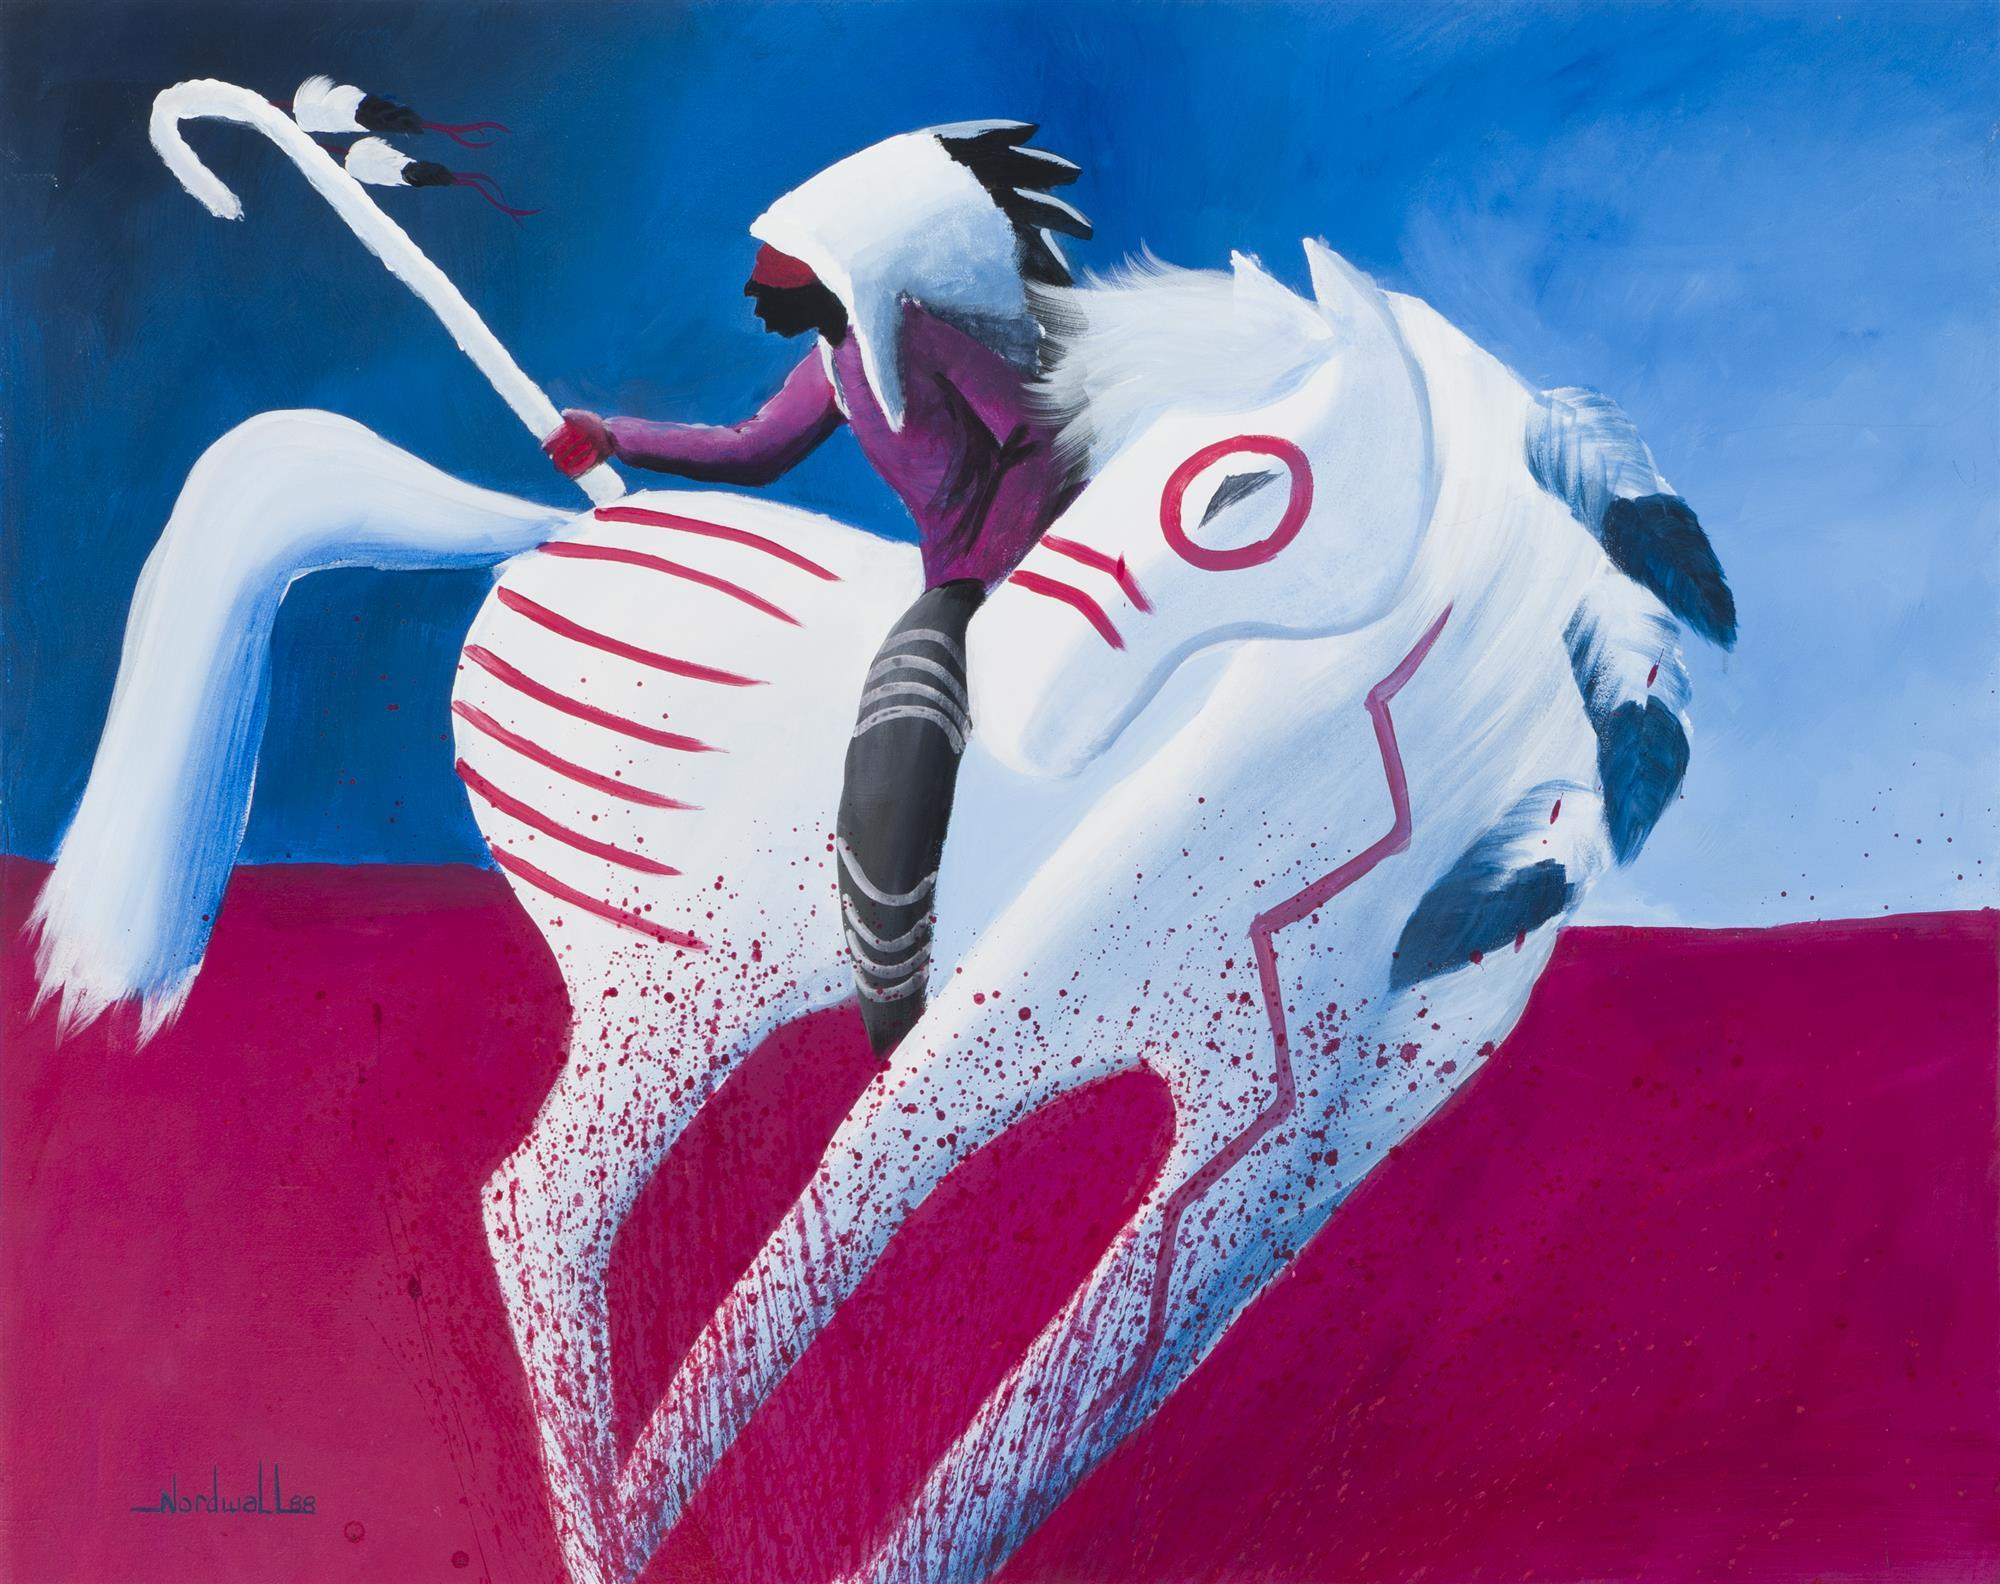 "Raymond Nordwall, (b. 1965 Santa Fe, NM), Rider on a white horse, 1988, Oil on canvas, 40"" H x 49.75"" W"